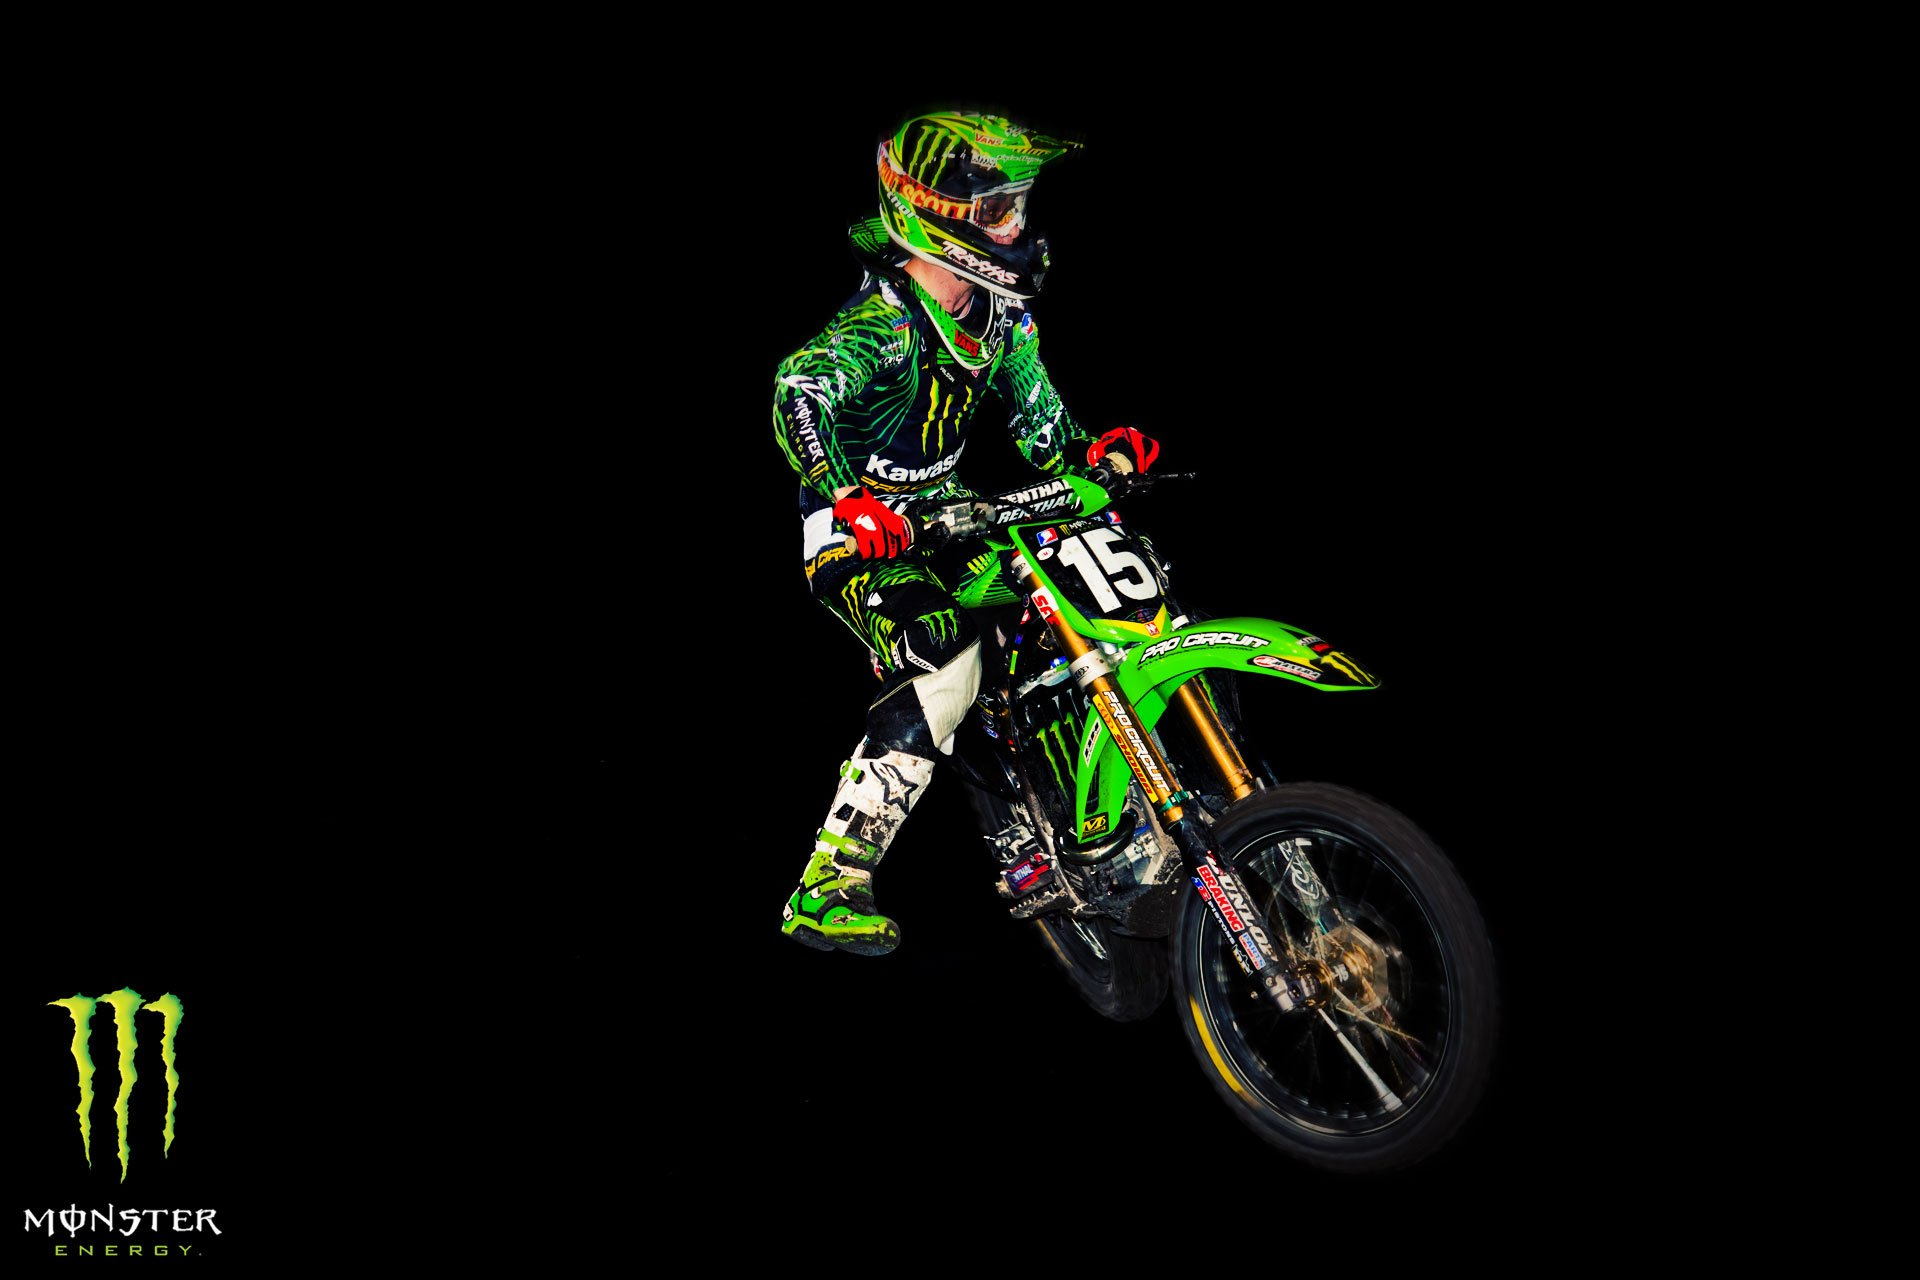 Etonnant Green Black Monster Energy Wallpaper #8795 Wallpaper | Wallpaper .